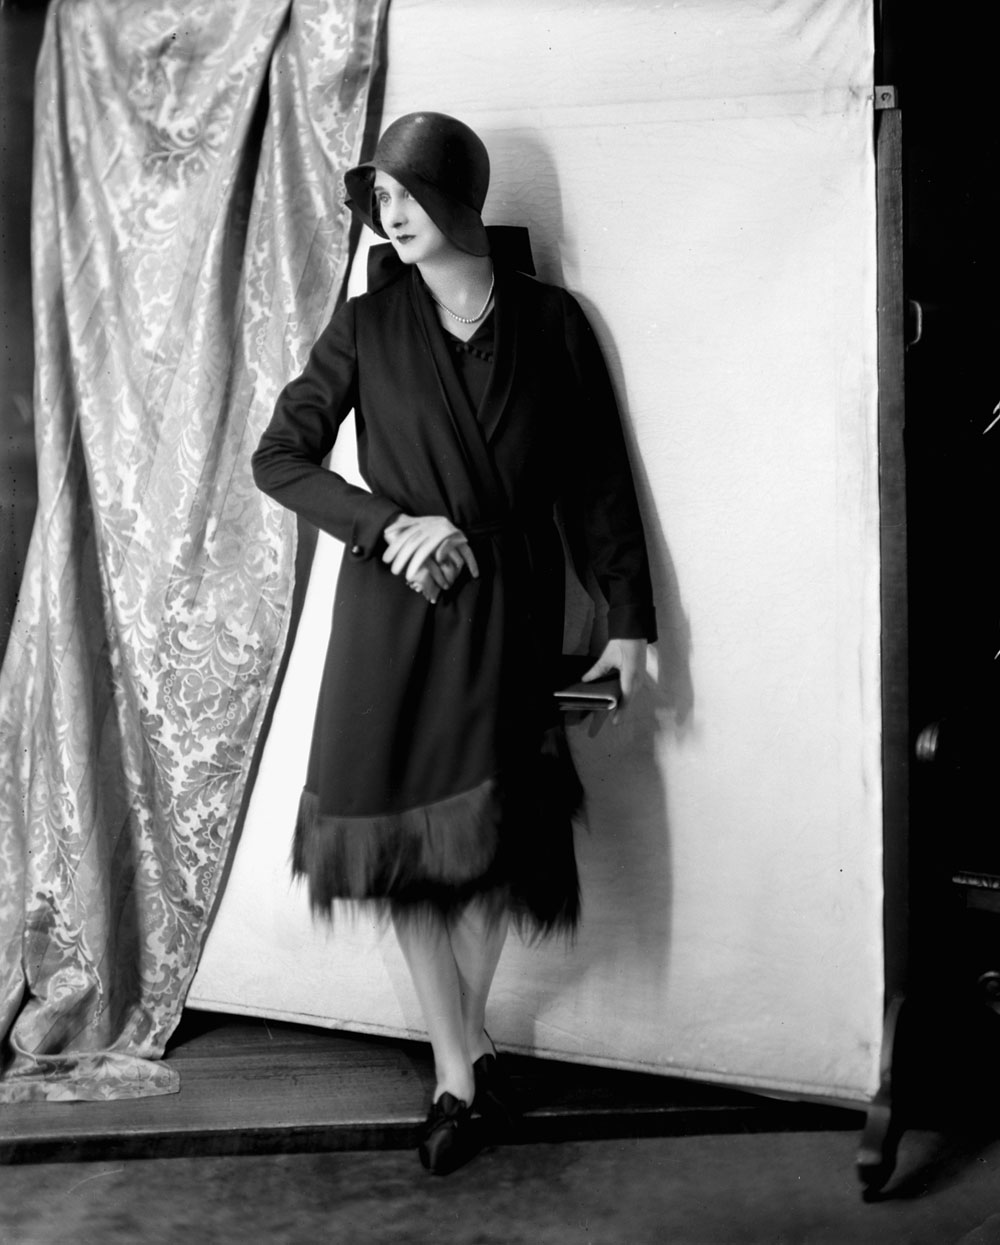 A model wears a knee-length dress and overcoat with a women's bowler hat.